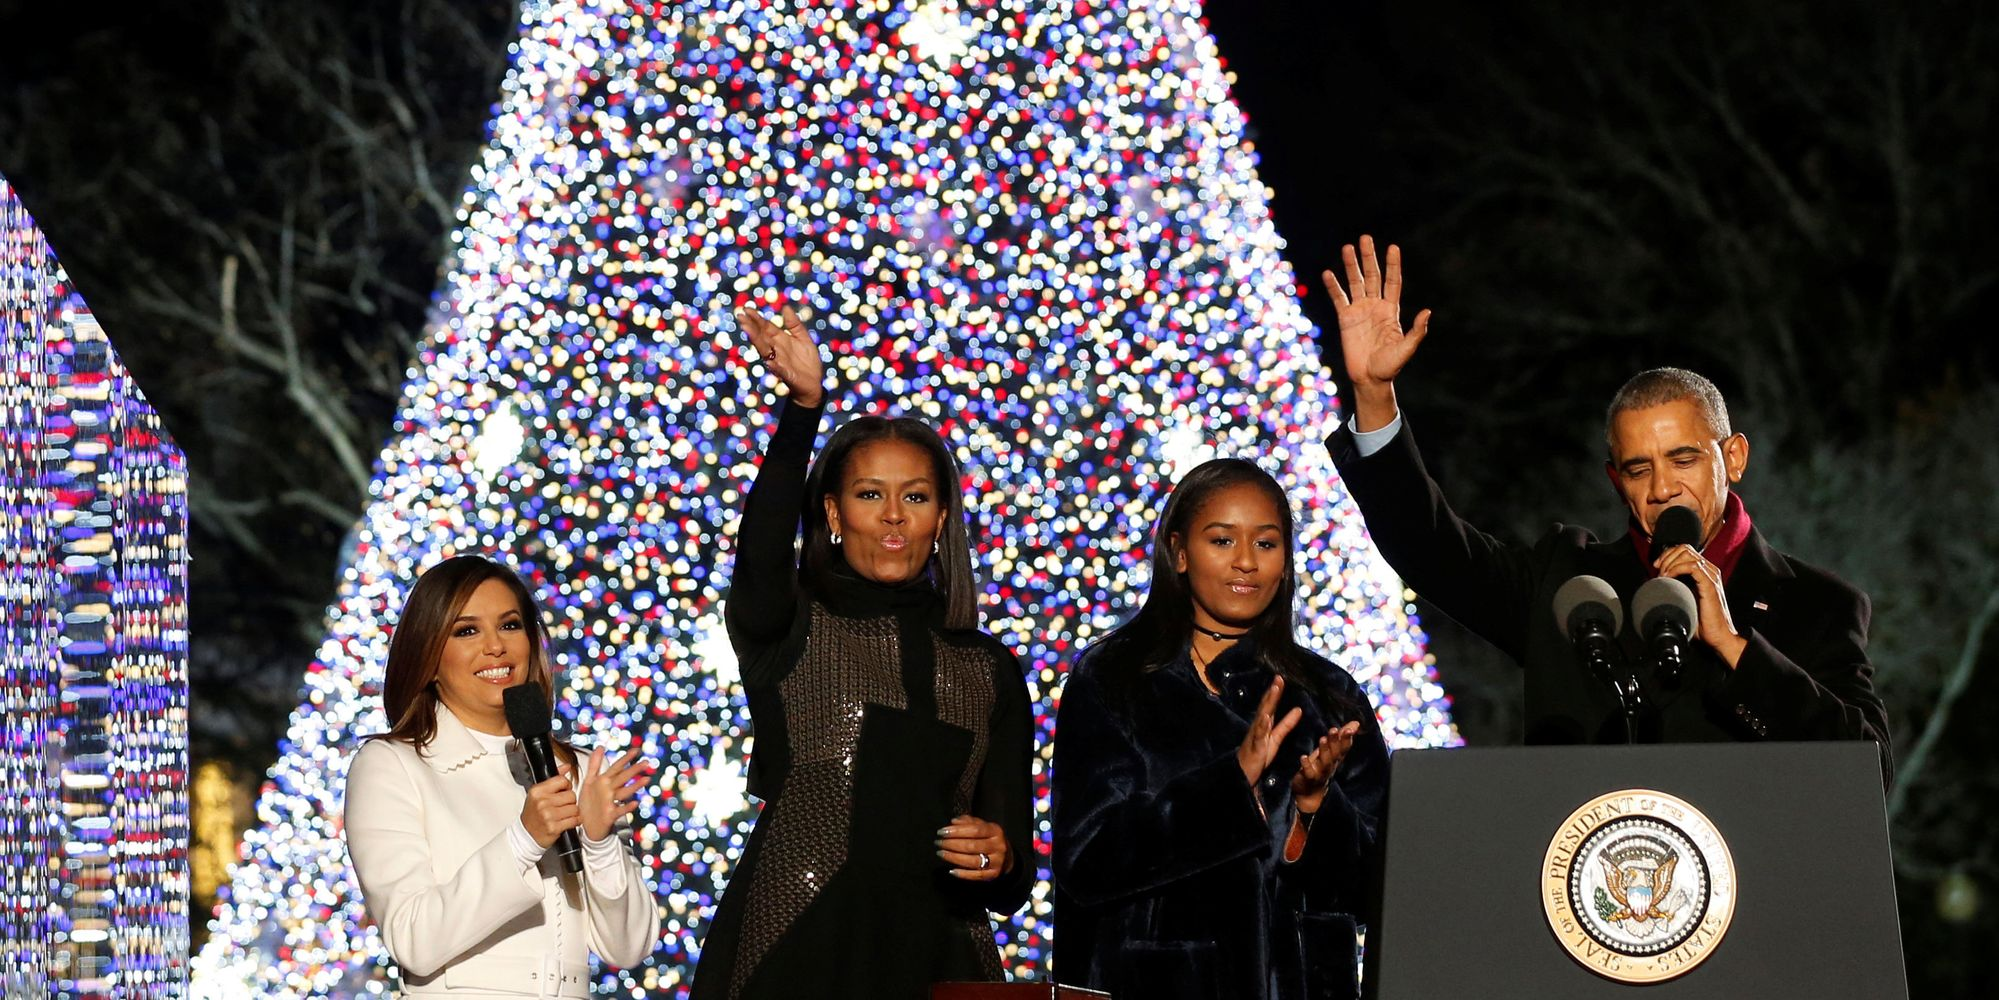 The Obamas Light Their Last Christmas Tree as the First Family